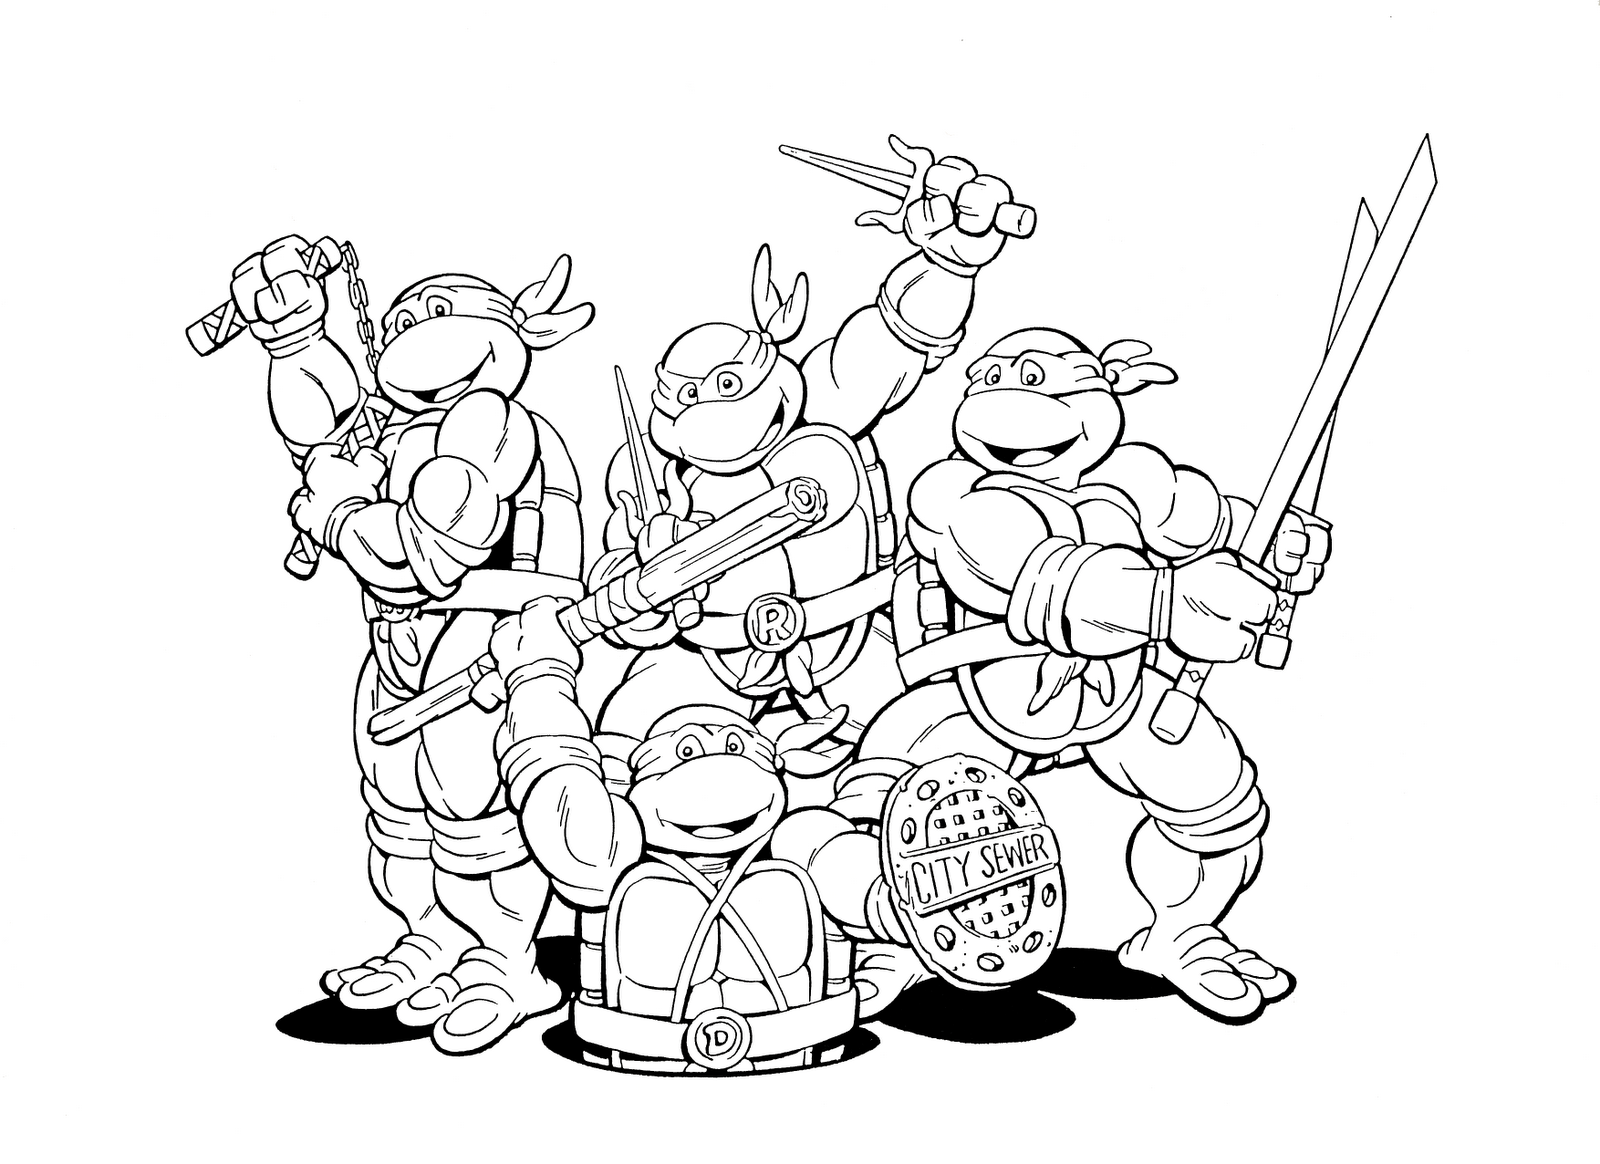 Teenage Mutant Ninja Turtles Tmnt Coloring Pages Free Printable Turtle Coloring Pages Ninja Turtle Coloring Pages Superhero Coloring Pages